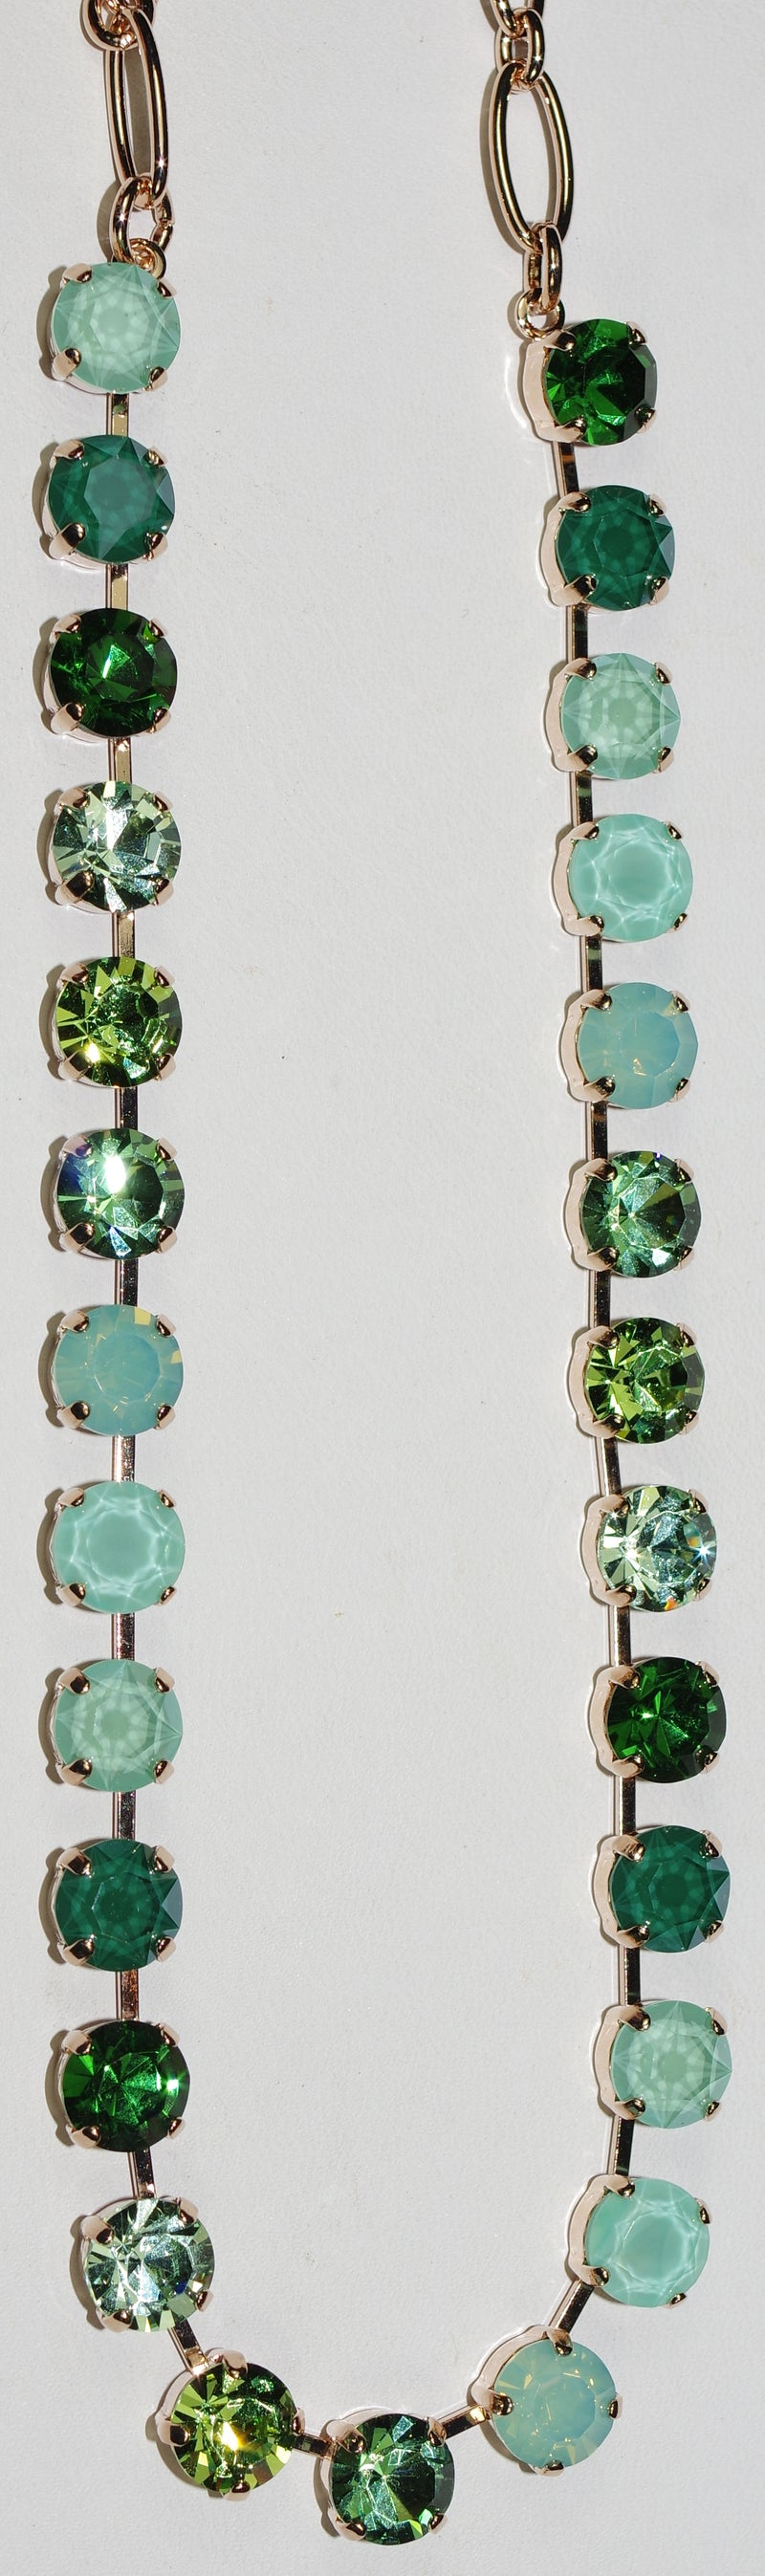 "MARIANA NECKLACE BETTE FERN: pacific opal, green 1/4"" stones in rose gold setting, 17"" adjustable chain"